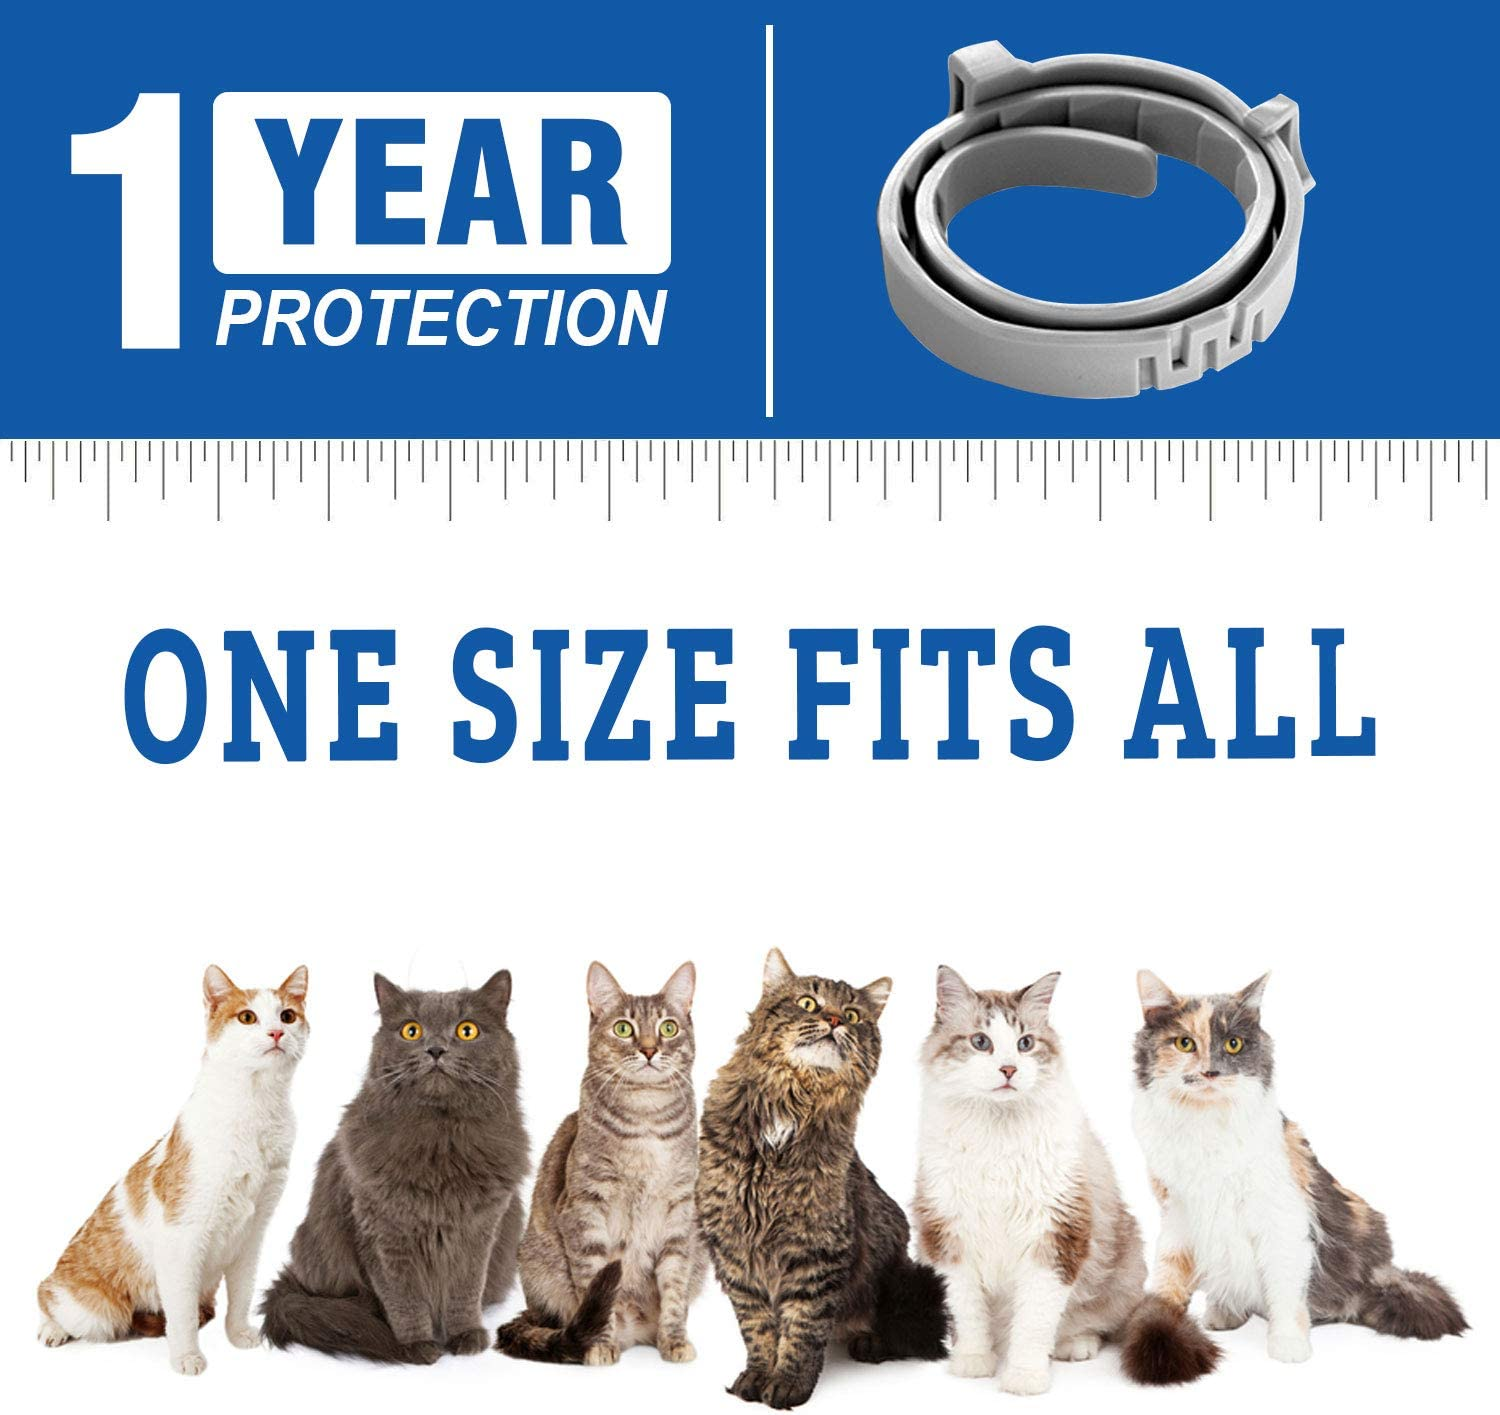 Allergy Free Flea Treatment for Cats- Adjustable Efficient and Safe Flea Collar 12 Months Protection from Fleas and Ticks COTENI Flea and Tick Collar for Cat